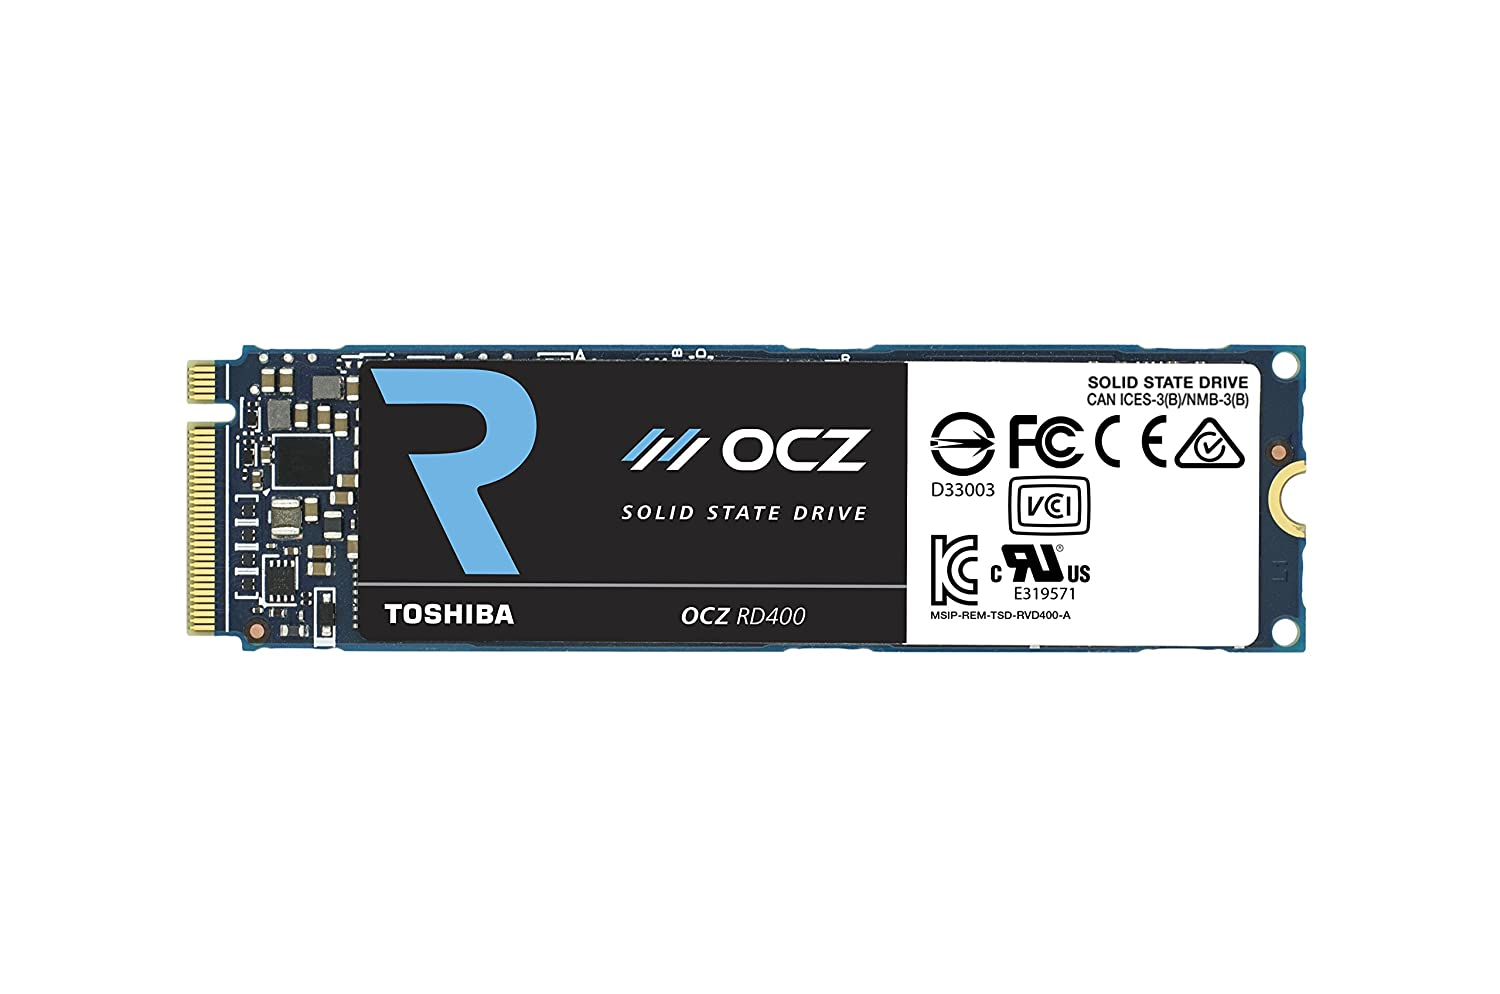 Amazon toshiba ocz rd400 series solid state drive pcie nvme m2 amazon toshiba ocz rd400 series solid state drive pcie nvme m2 512gb with mlc flash rvd400 m22280 512g computers accessories falaconquin